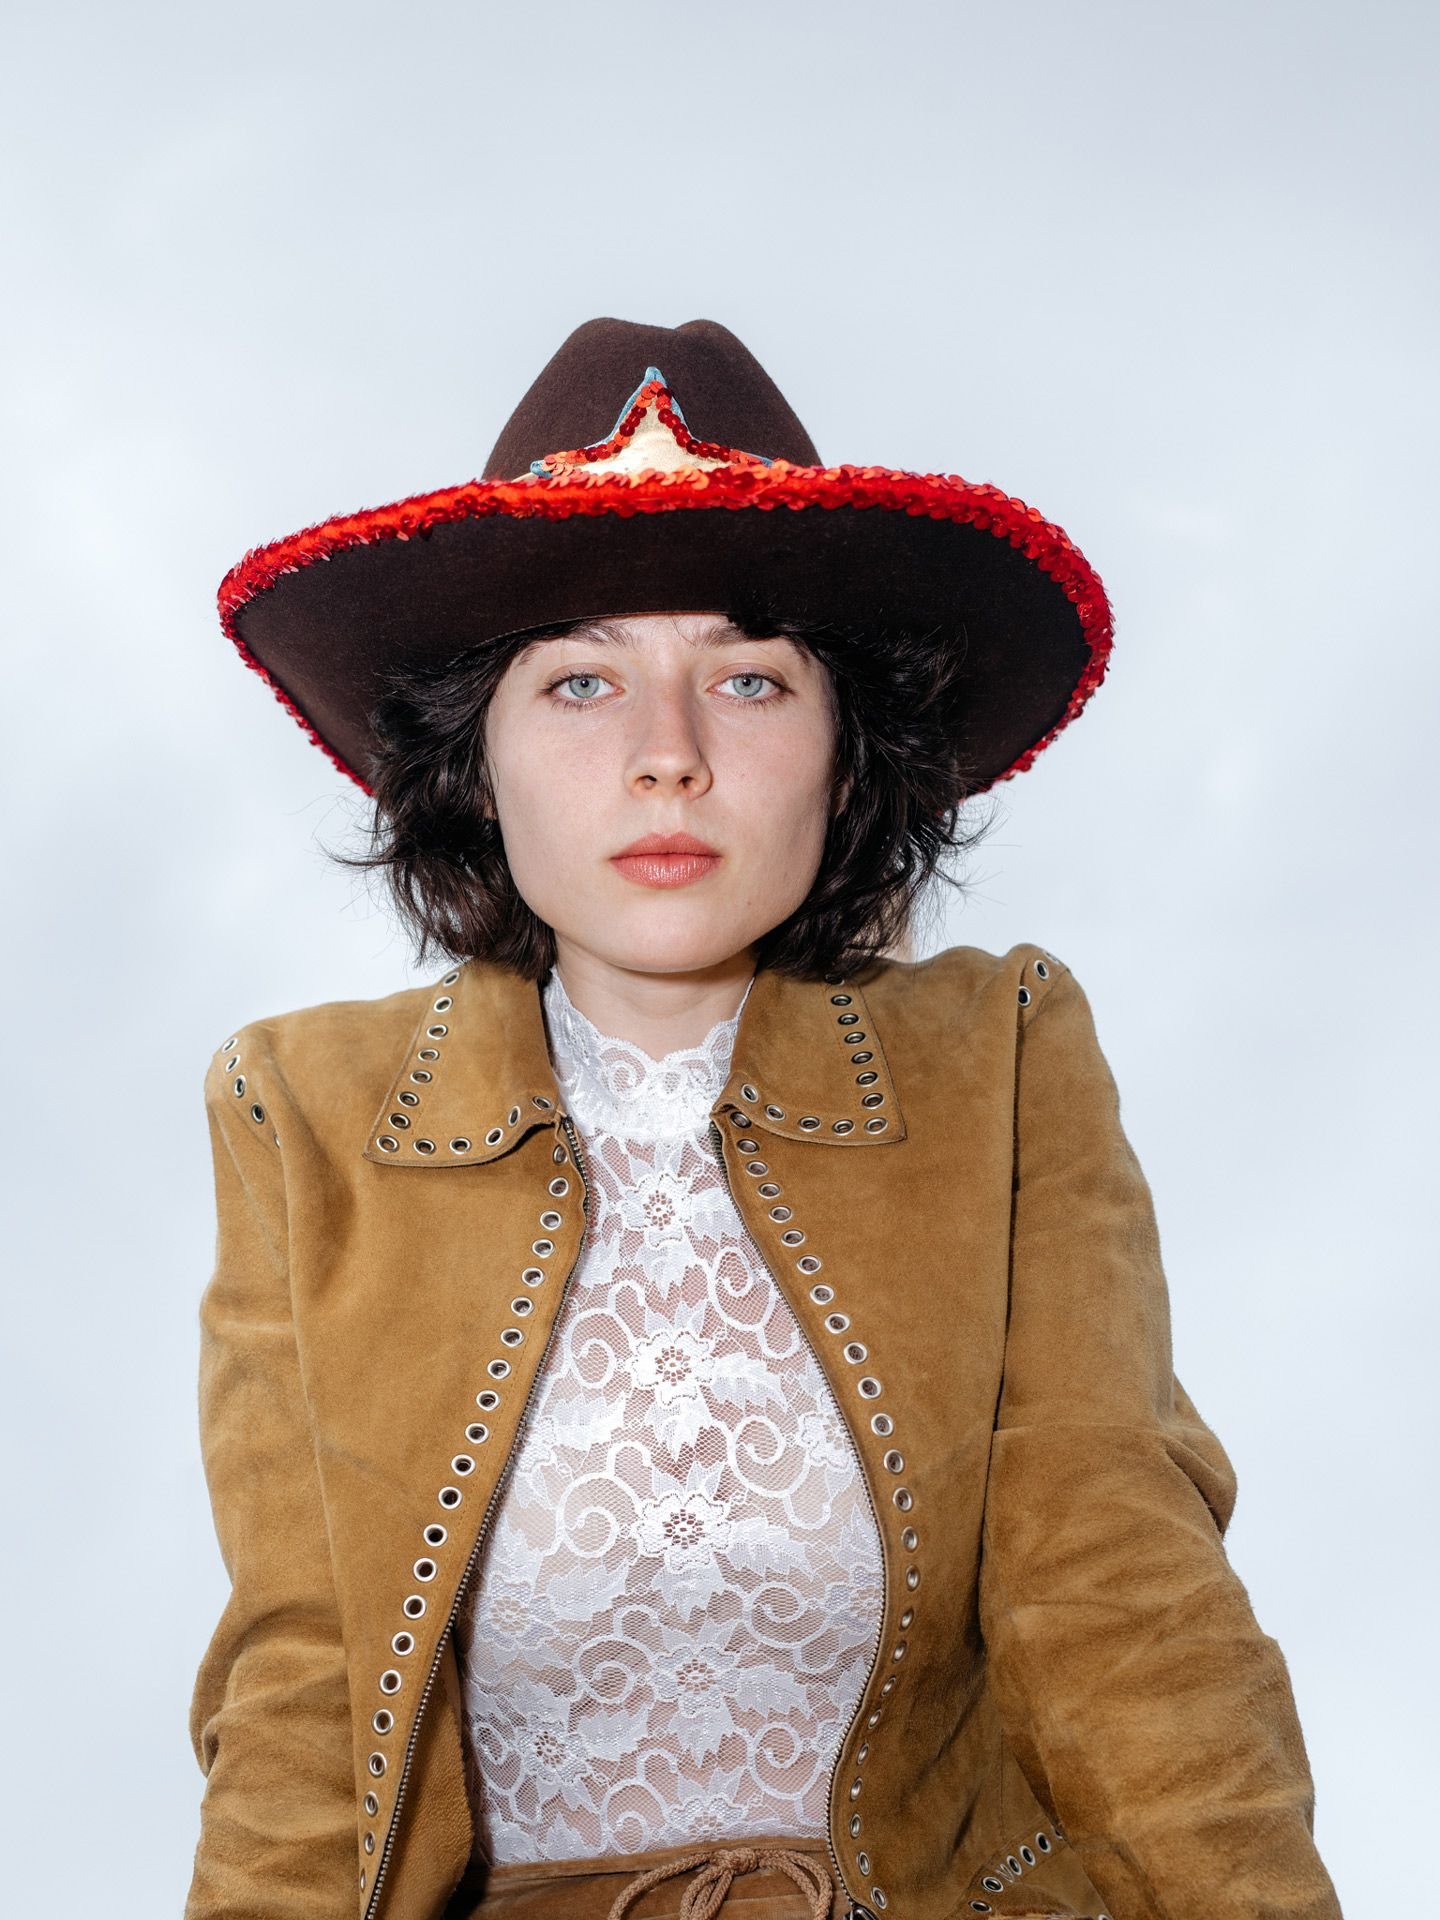 portrait of black haired girl with blue eyes wearing cowboy attire by Alexi Hobbs for Larose Paris in St-Tite